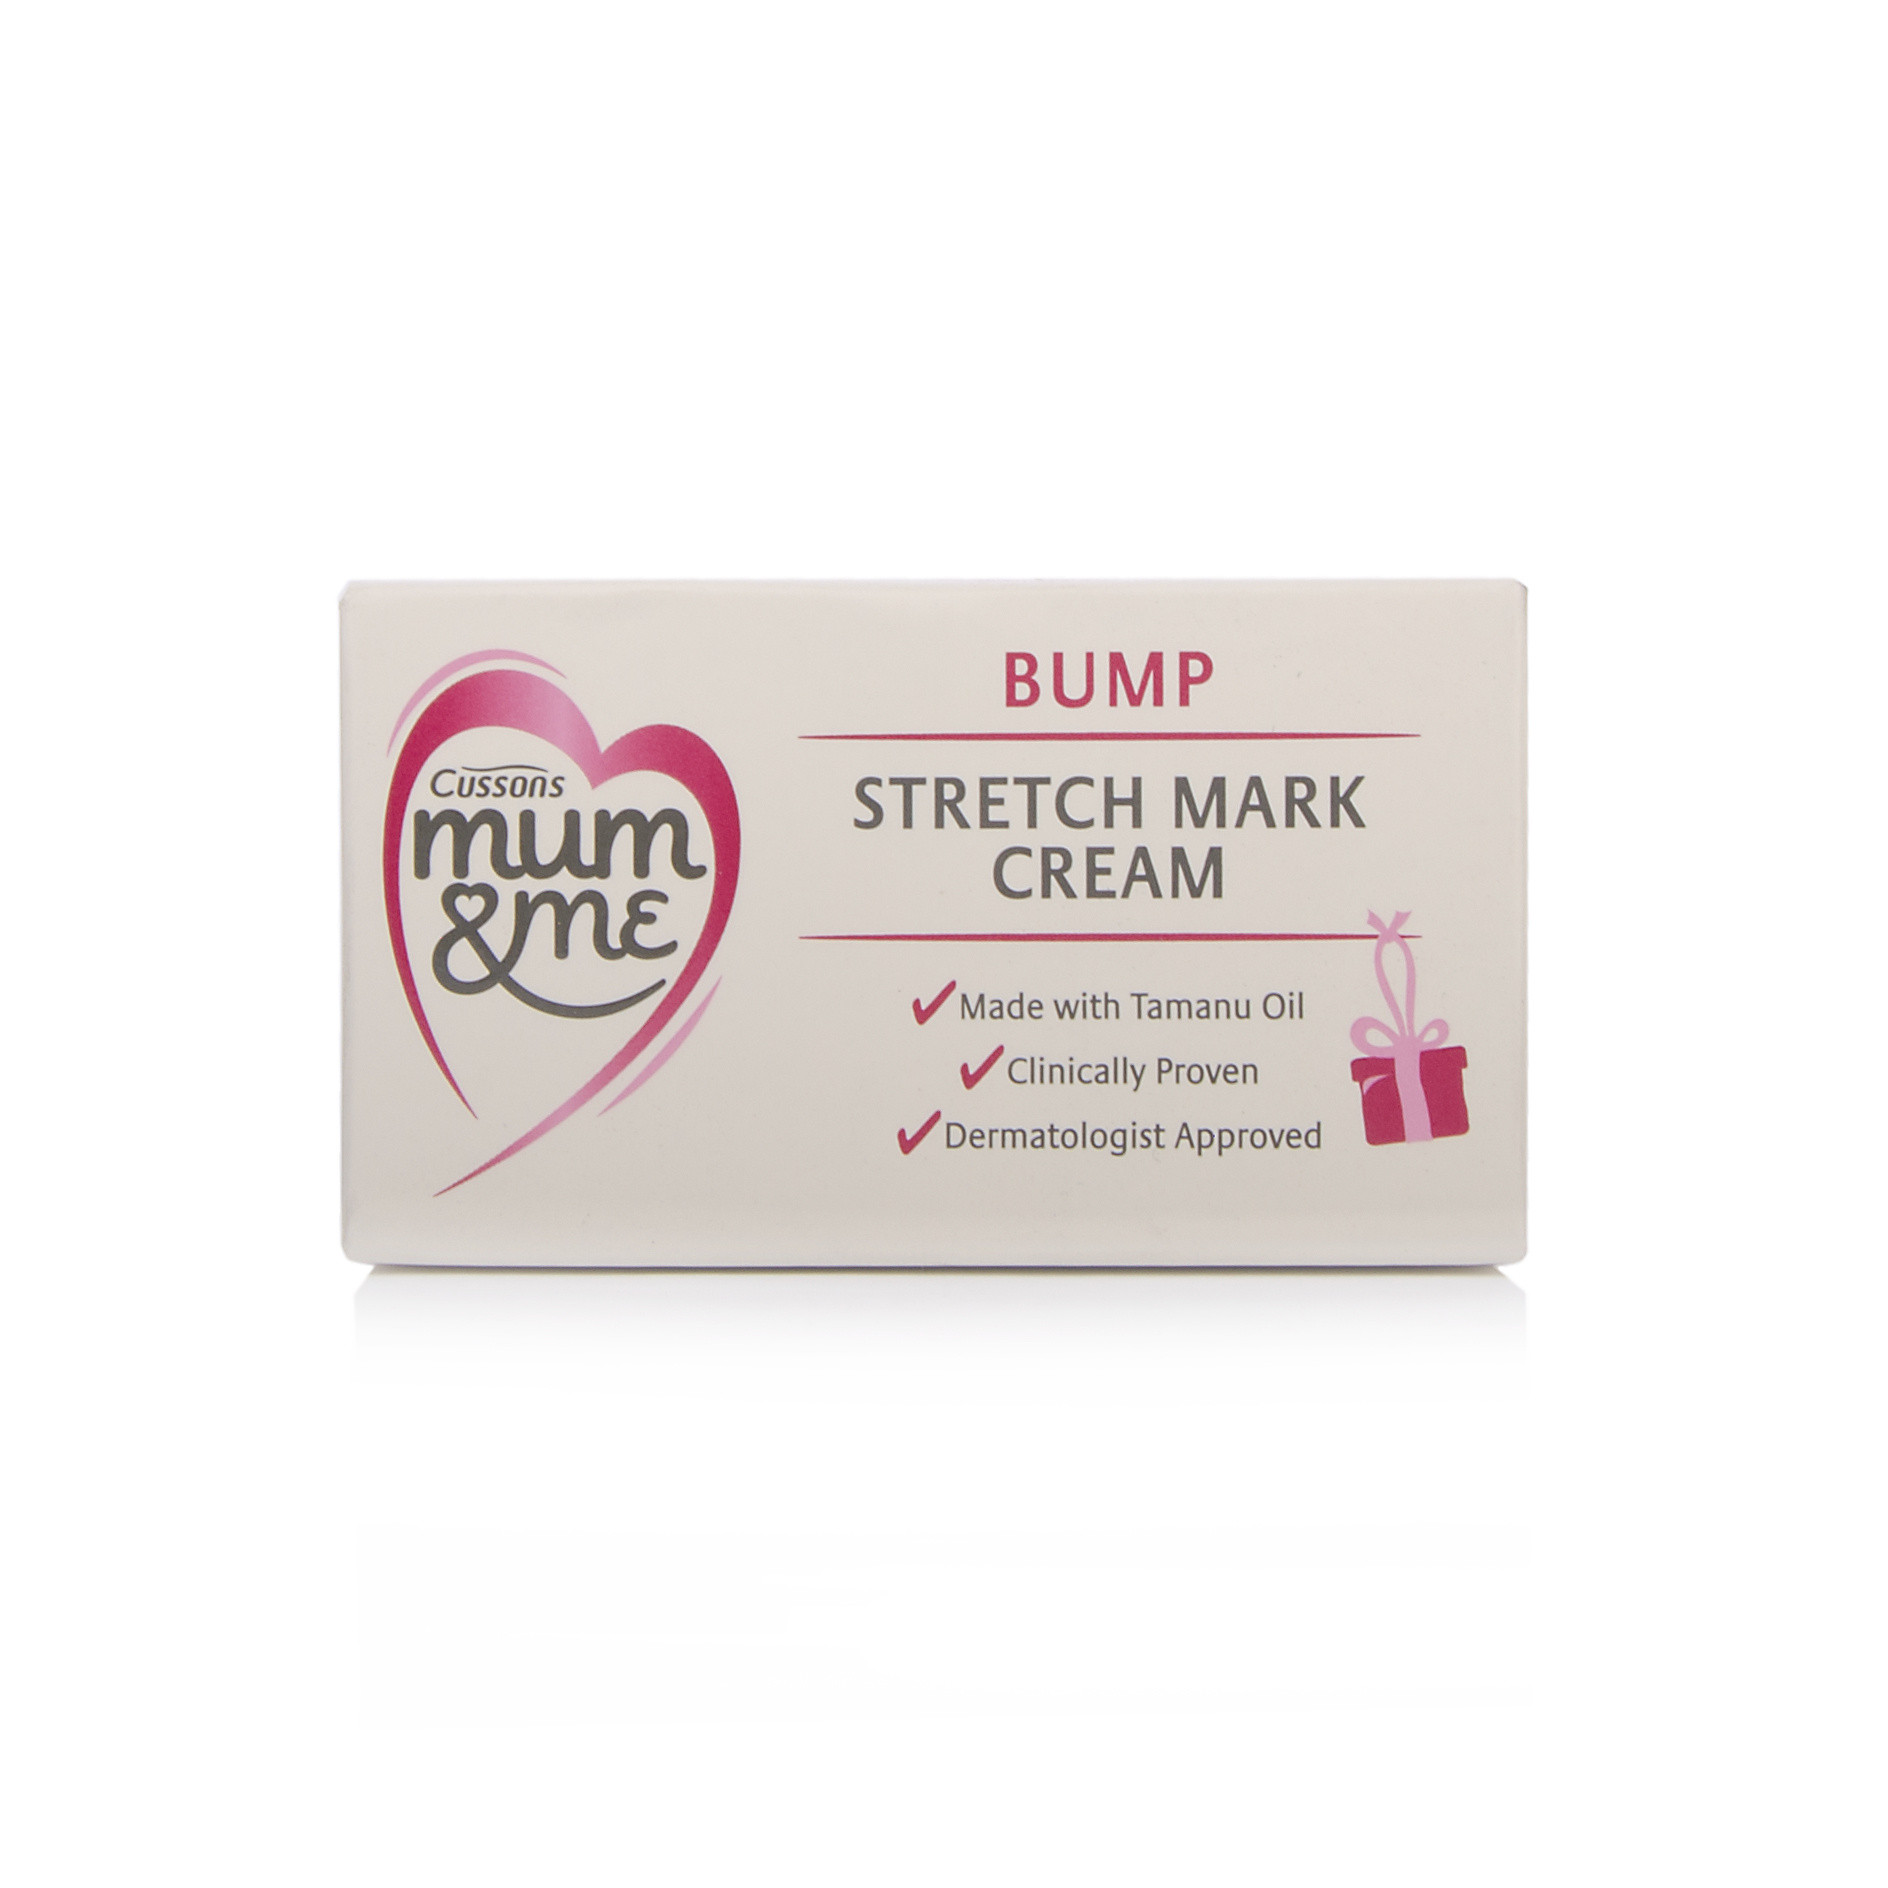 Cussons Mum & Me Bump Stretch Mark Cream